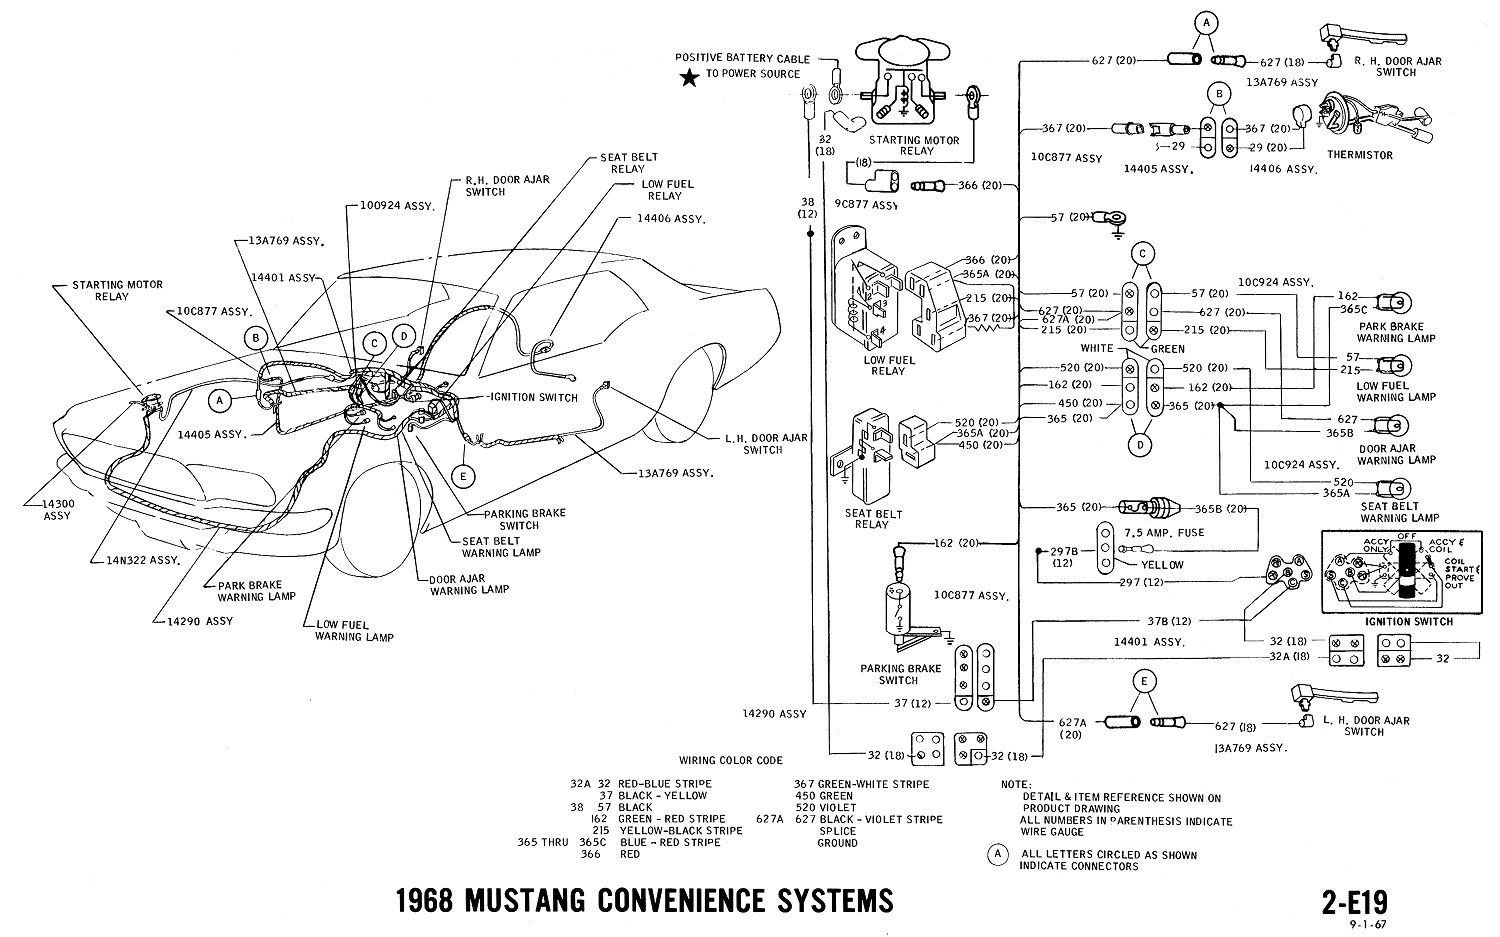 1968 mustang wiring diagrams and vacuum schematics average joe rh  averagejoerestoration com 1969 mustang wiring harness